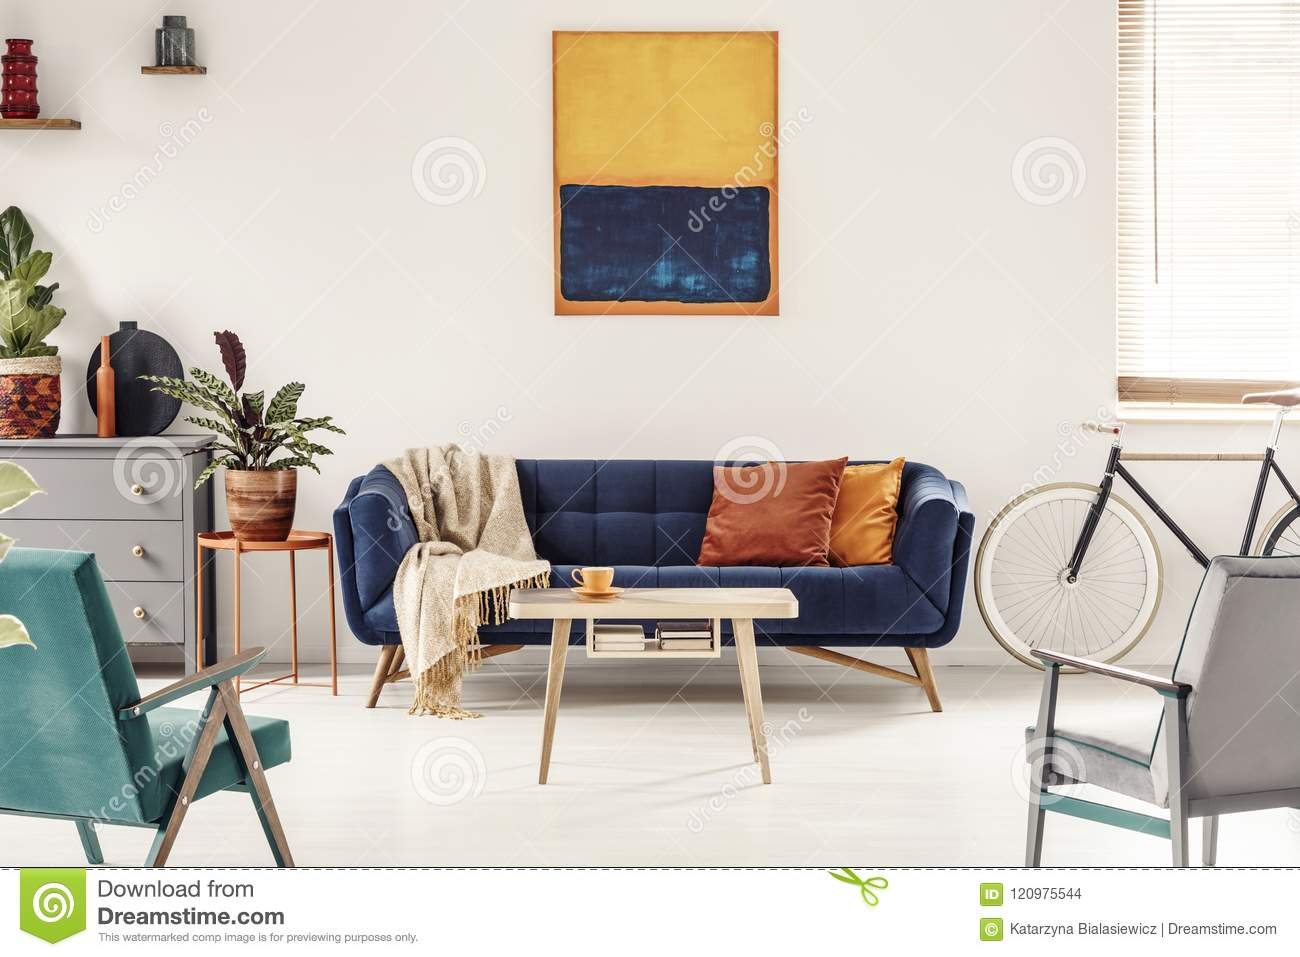 Yellow And Navy Blue Painting Above Sofa In Colorful Living